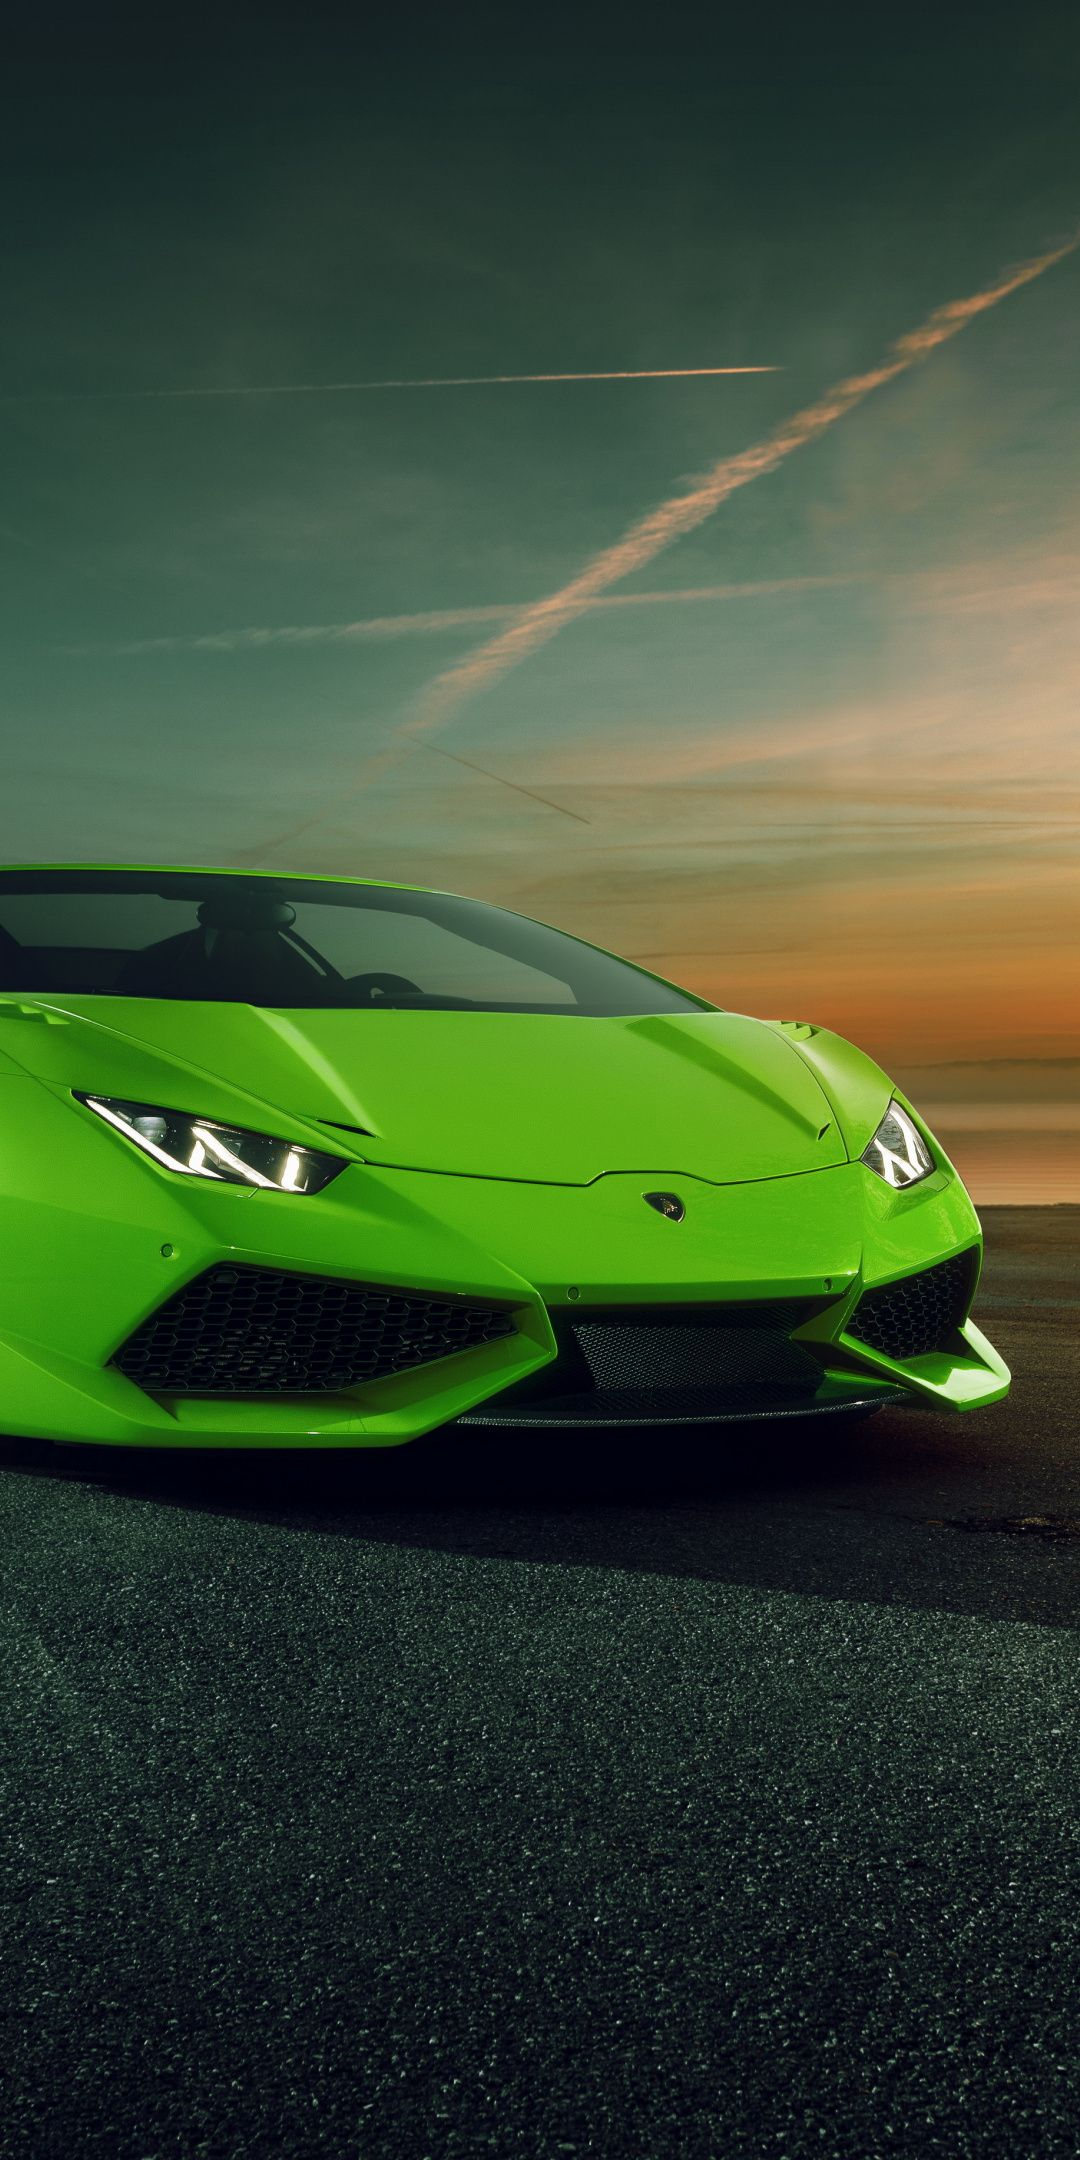 Novitec Torado Lamborghini Huracán, green, sports car, 1080×2160 wallpaper